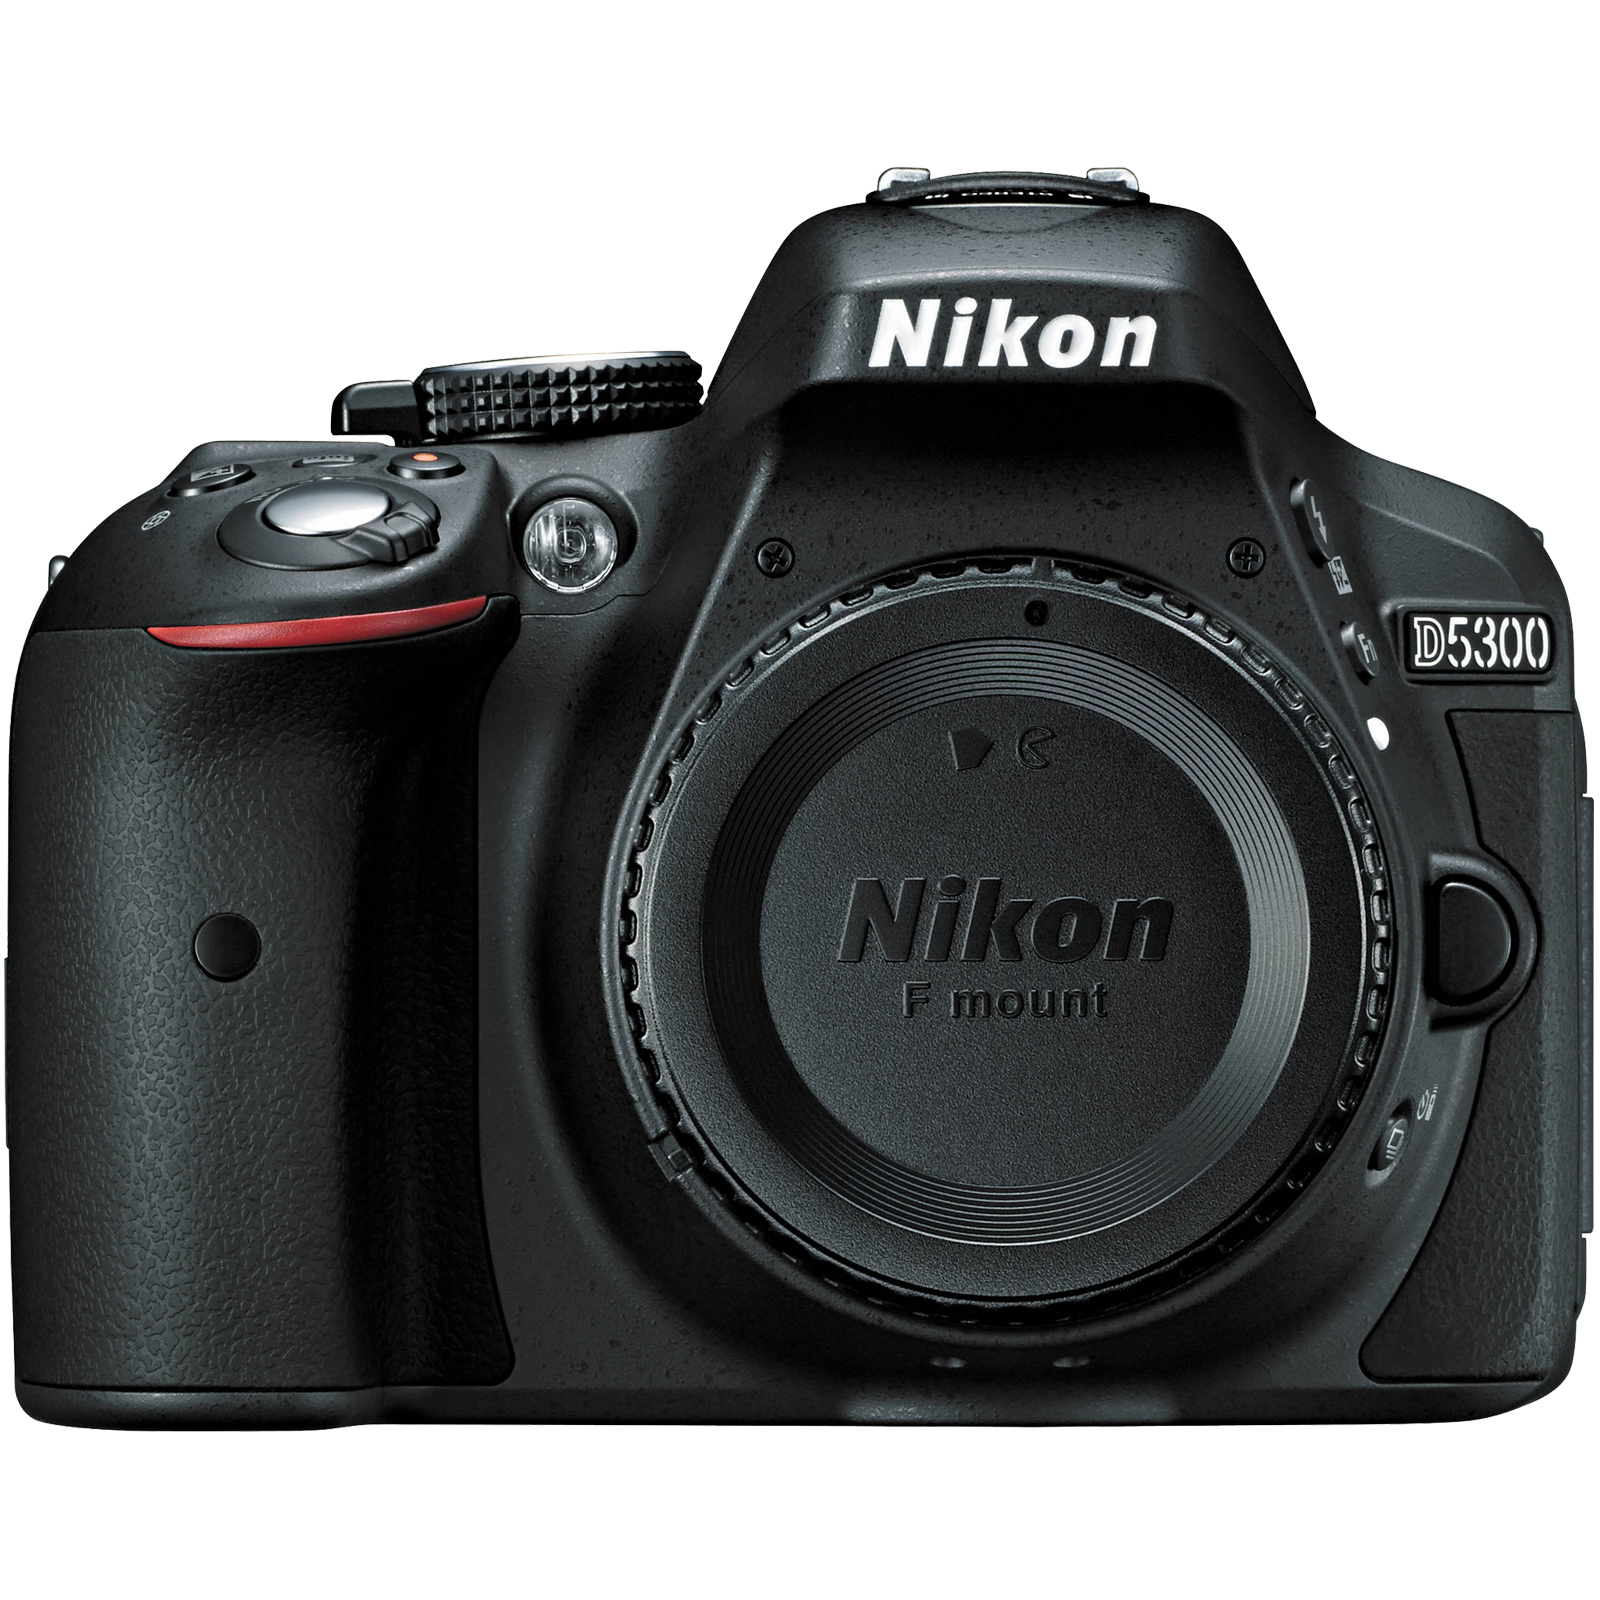 Nikon D5300 - Digital camera - SLR - 24.2 MP - APS-C - body only - Wi-Fi - black